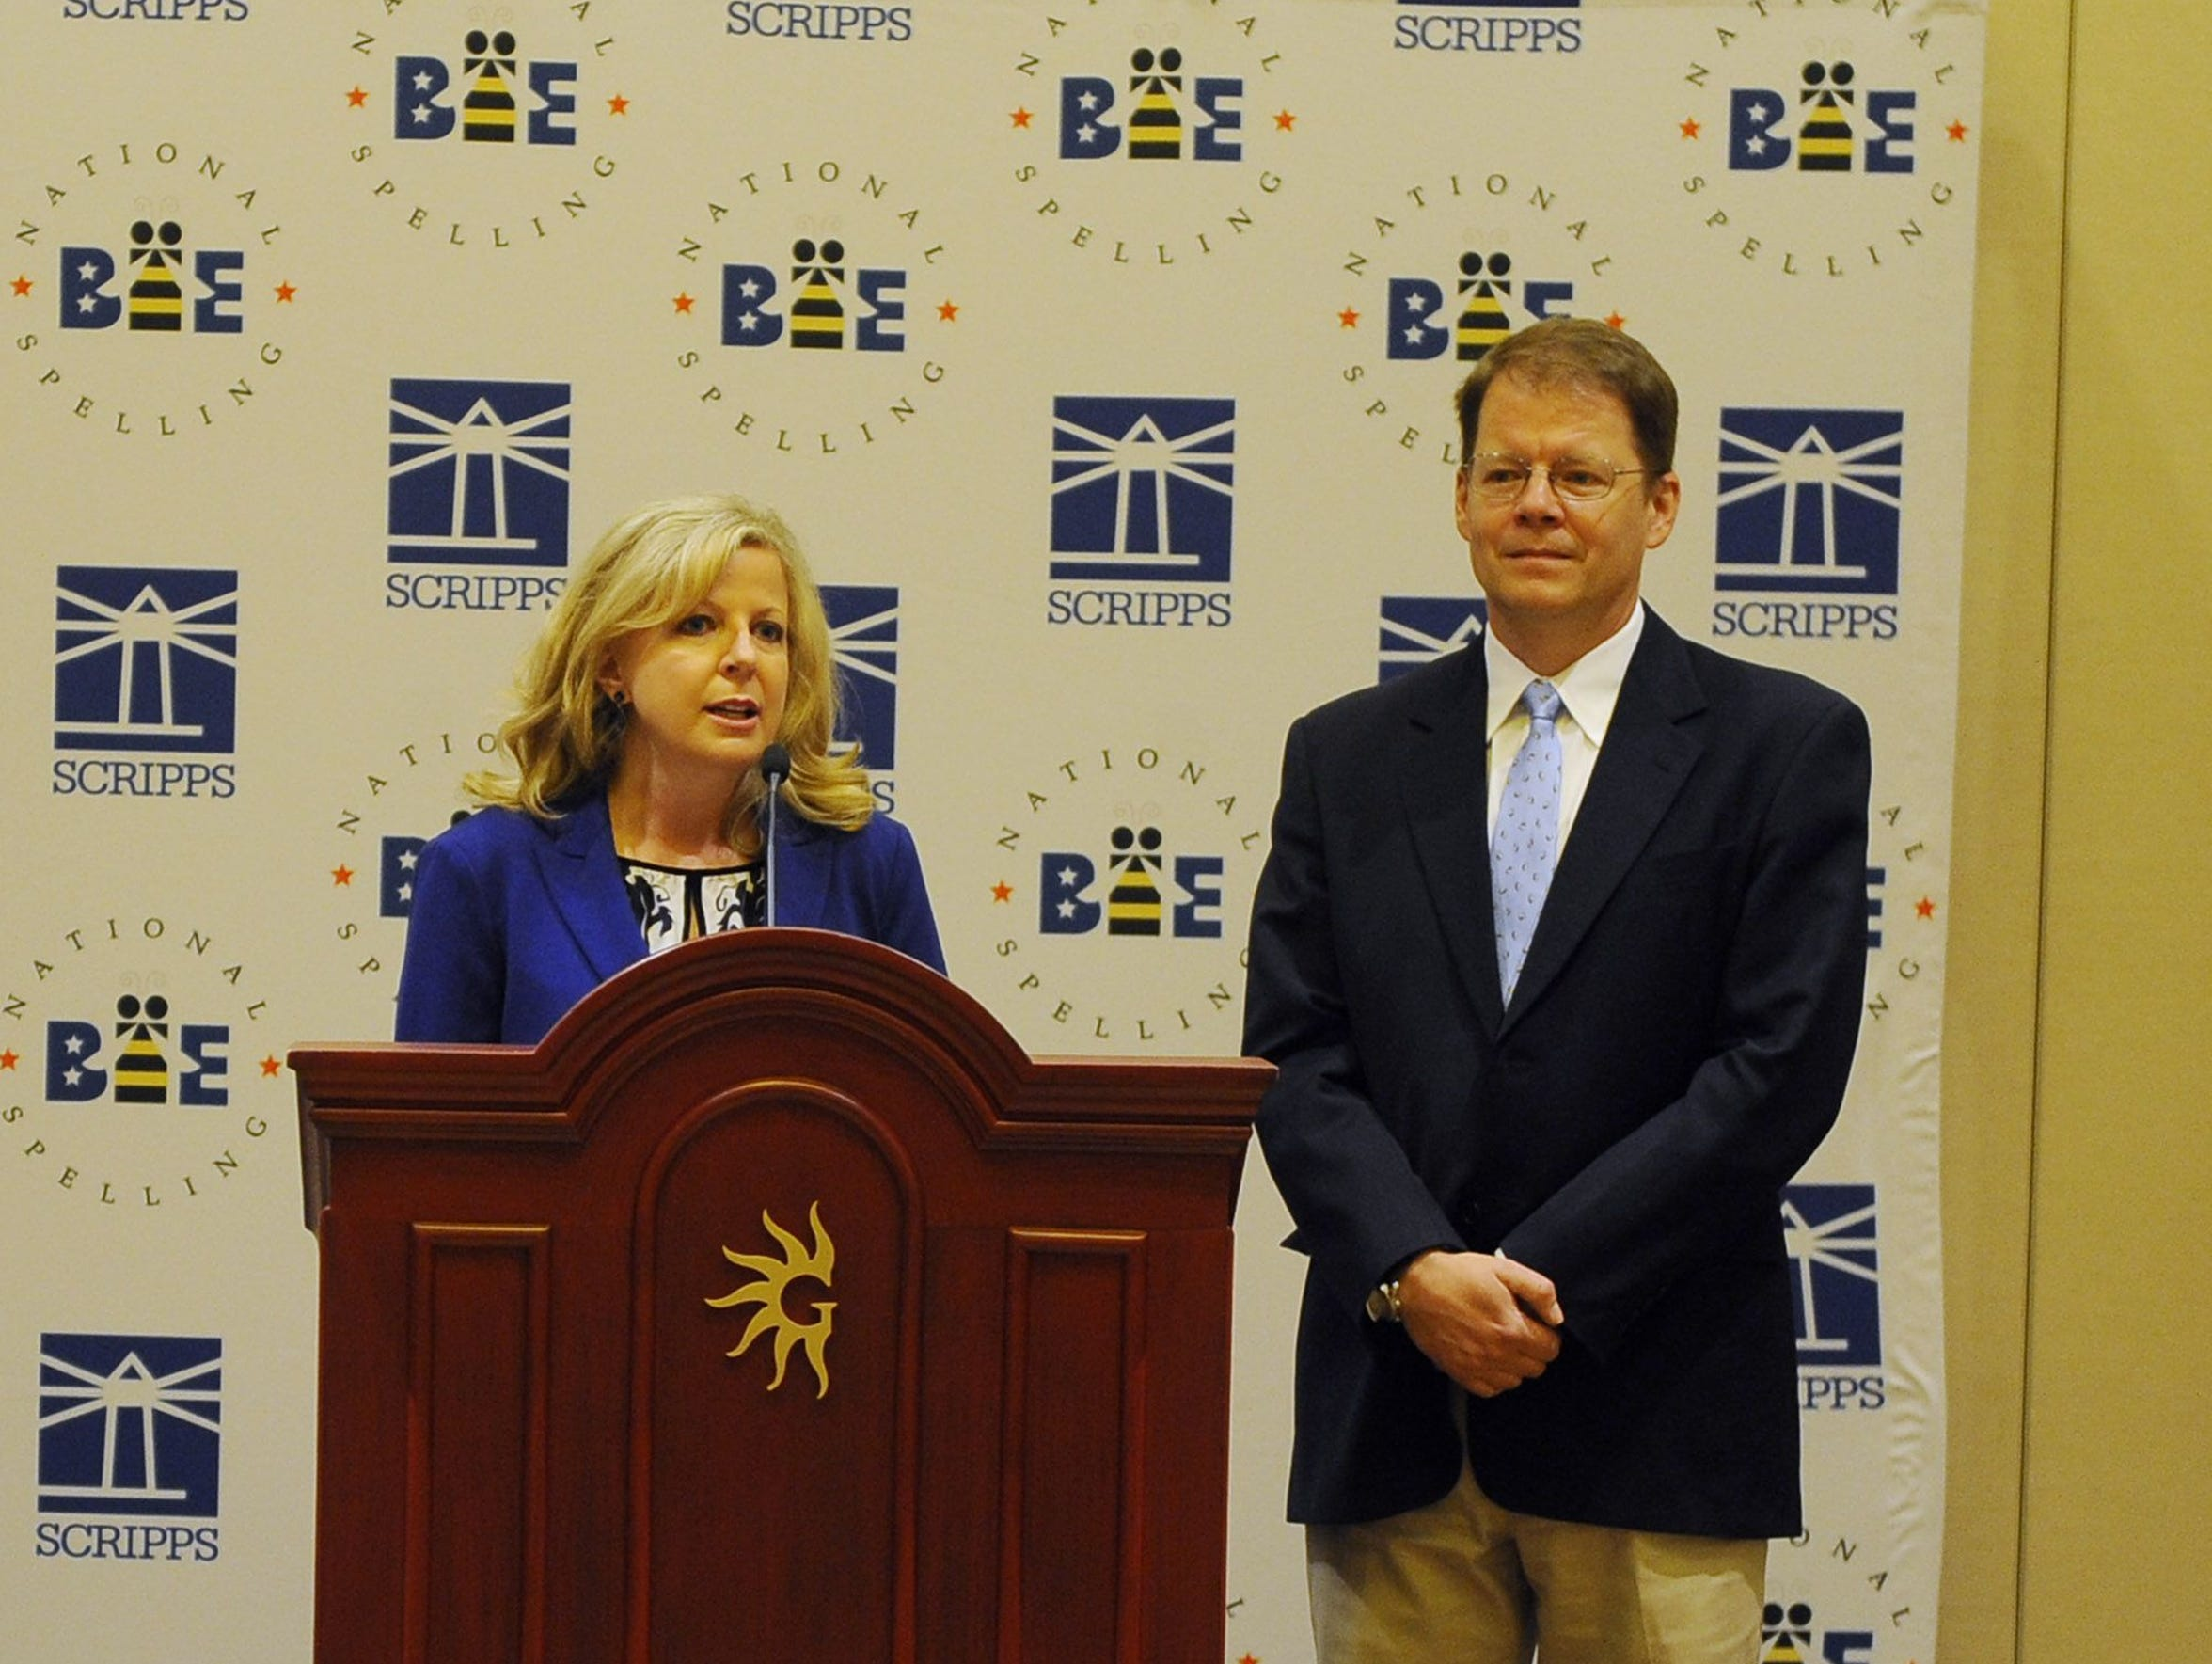 2015 Scripps National Spelling Bee Executive Director